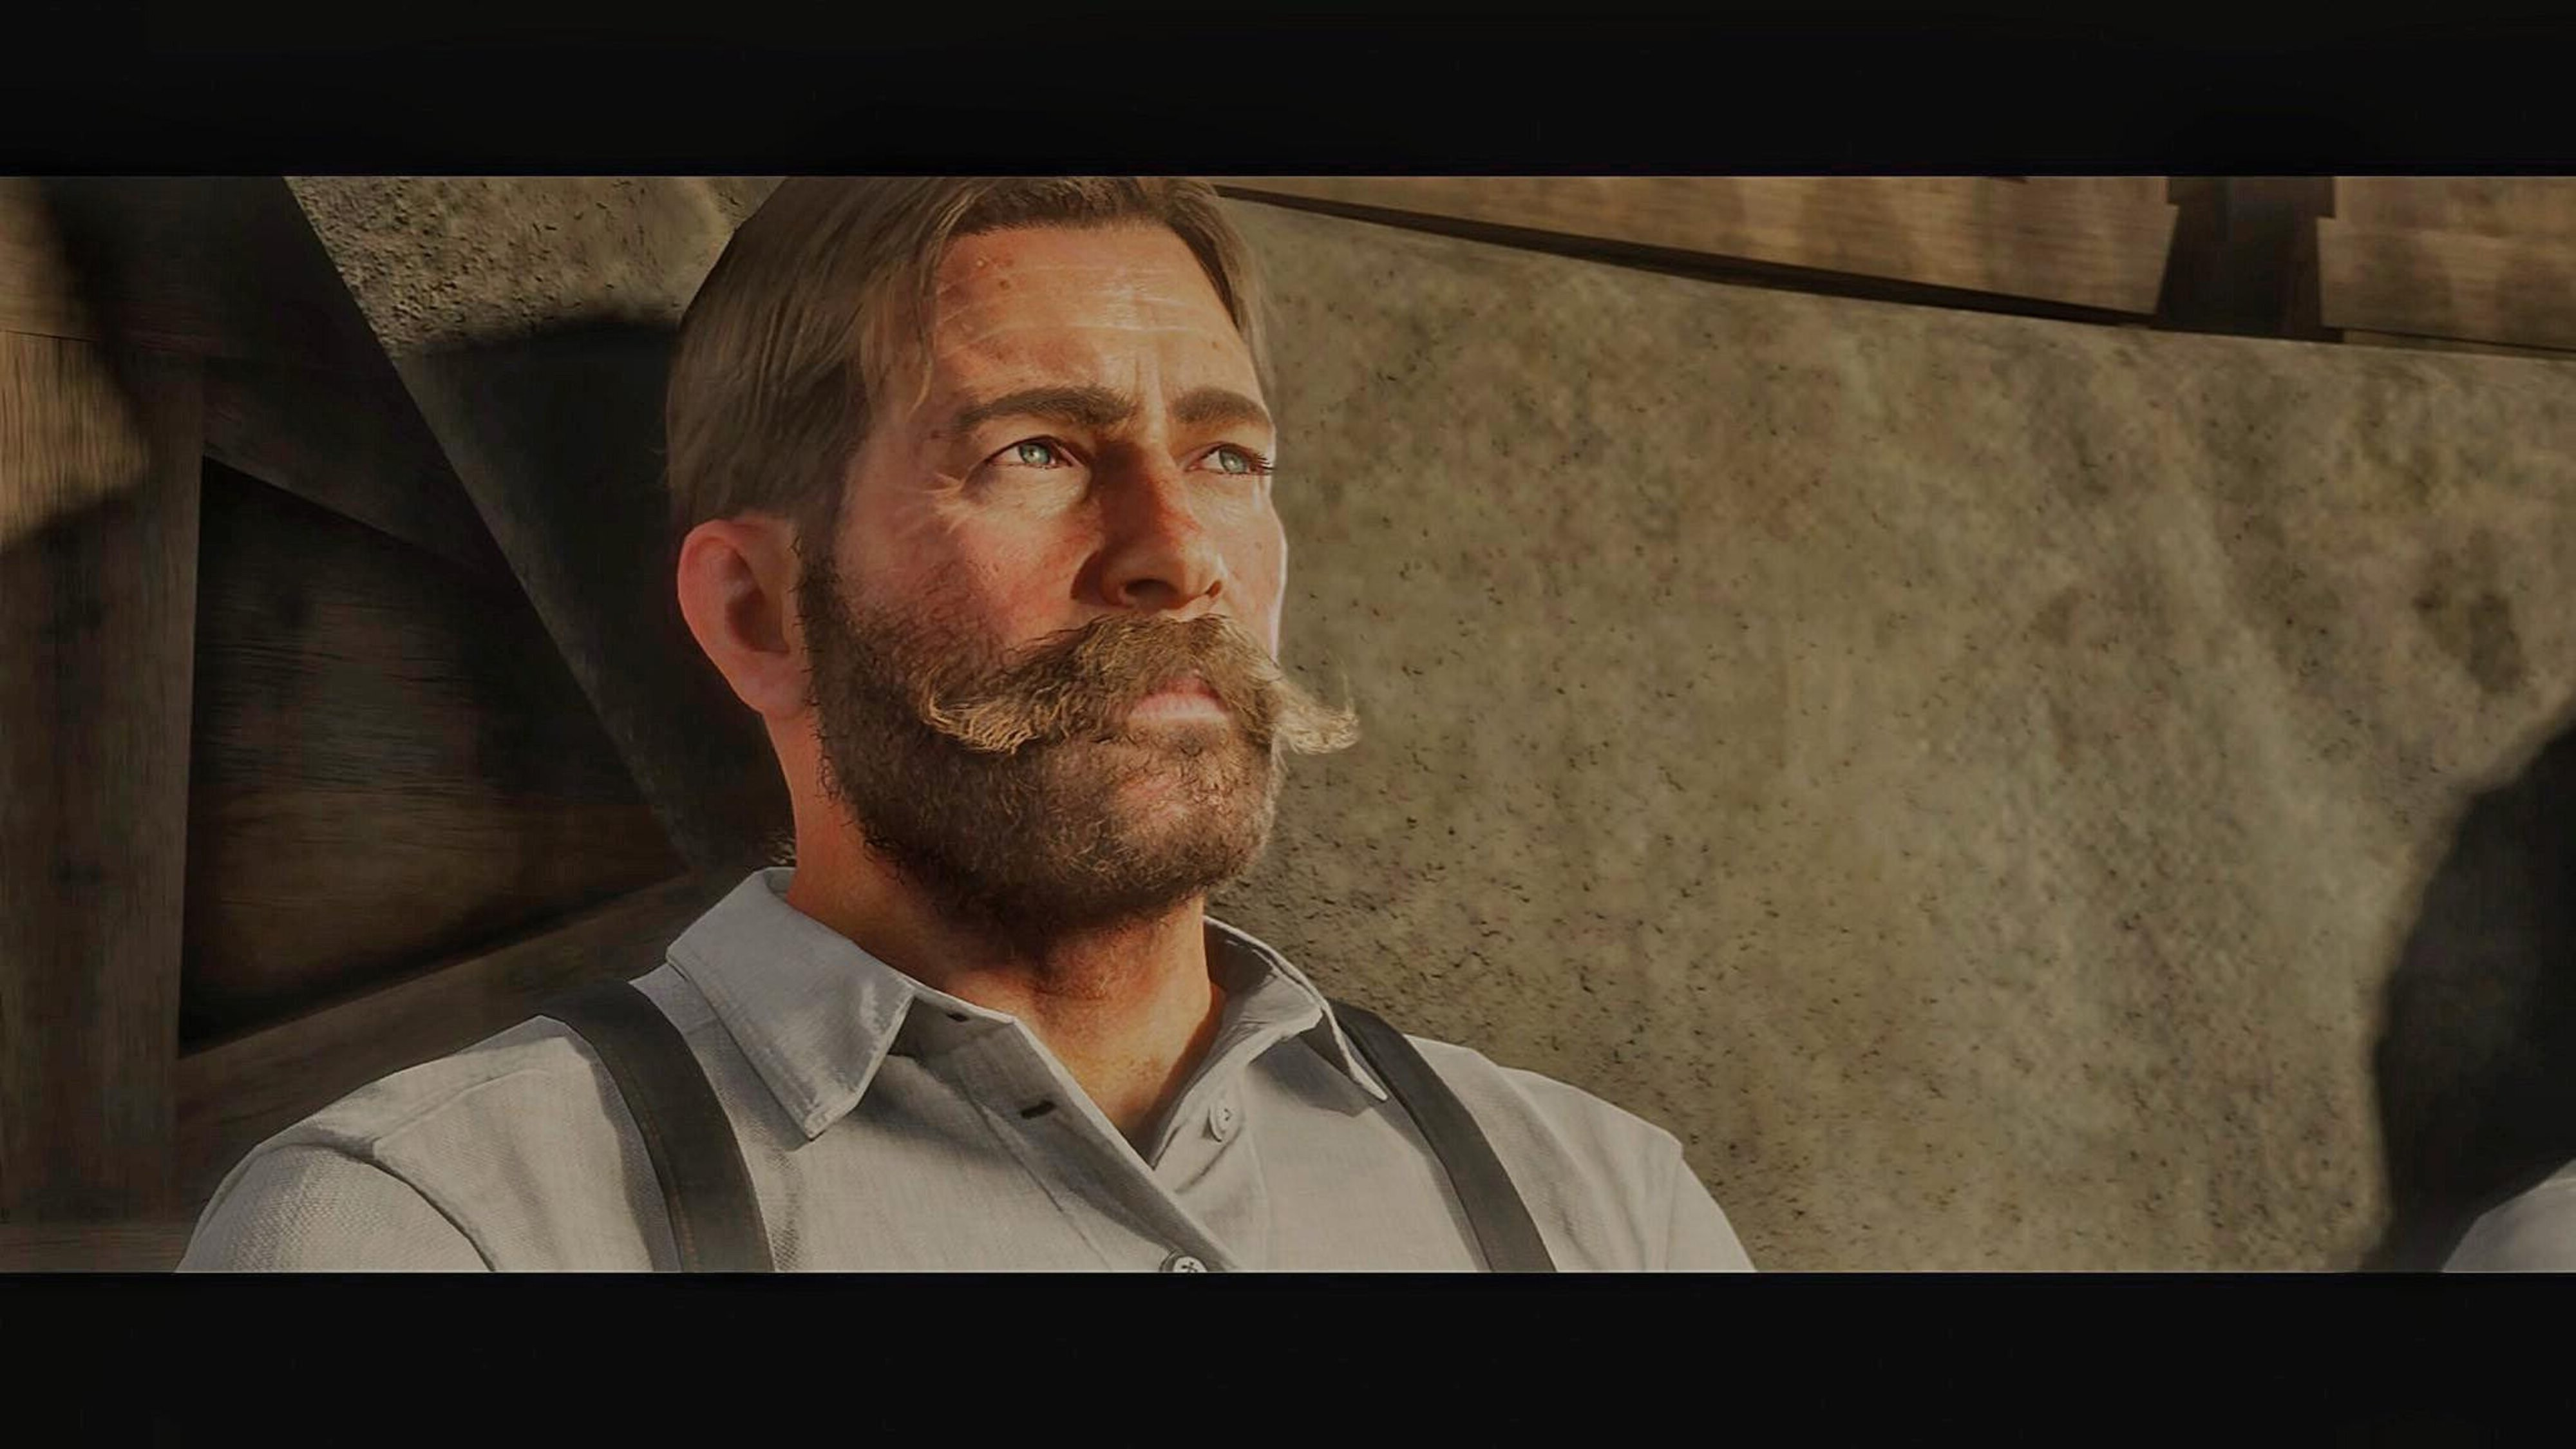 Handlebar mustache in the style of Arthur Morgan.